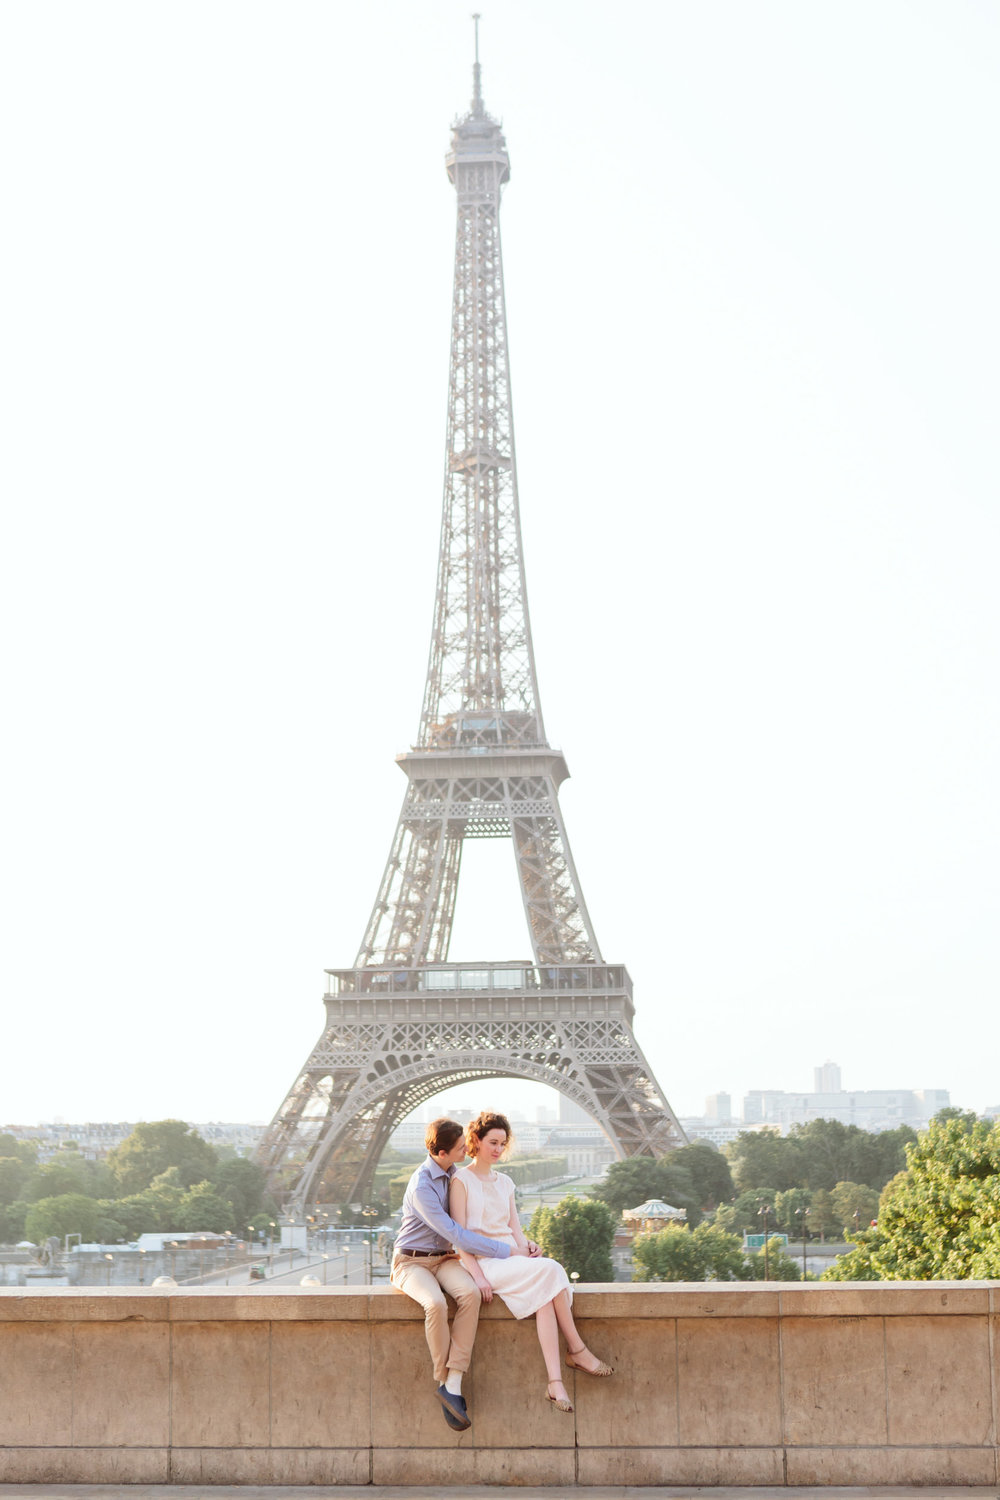 Couple in love sitting at Trocadero by the Eiffel Tower at sunrise captured by Paris Photographer Federico Guendel IheartParisFr